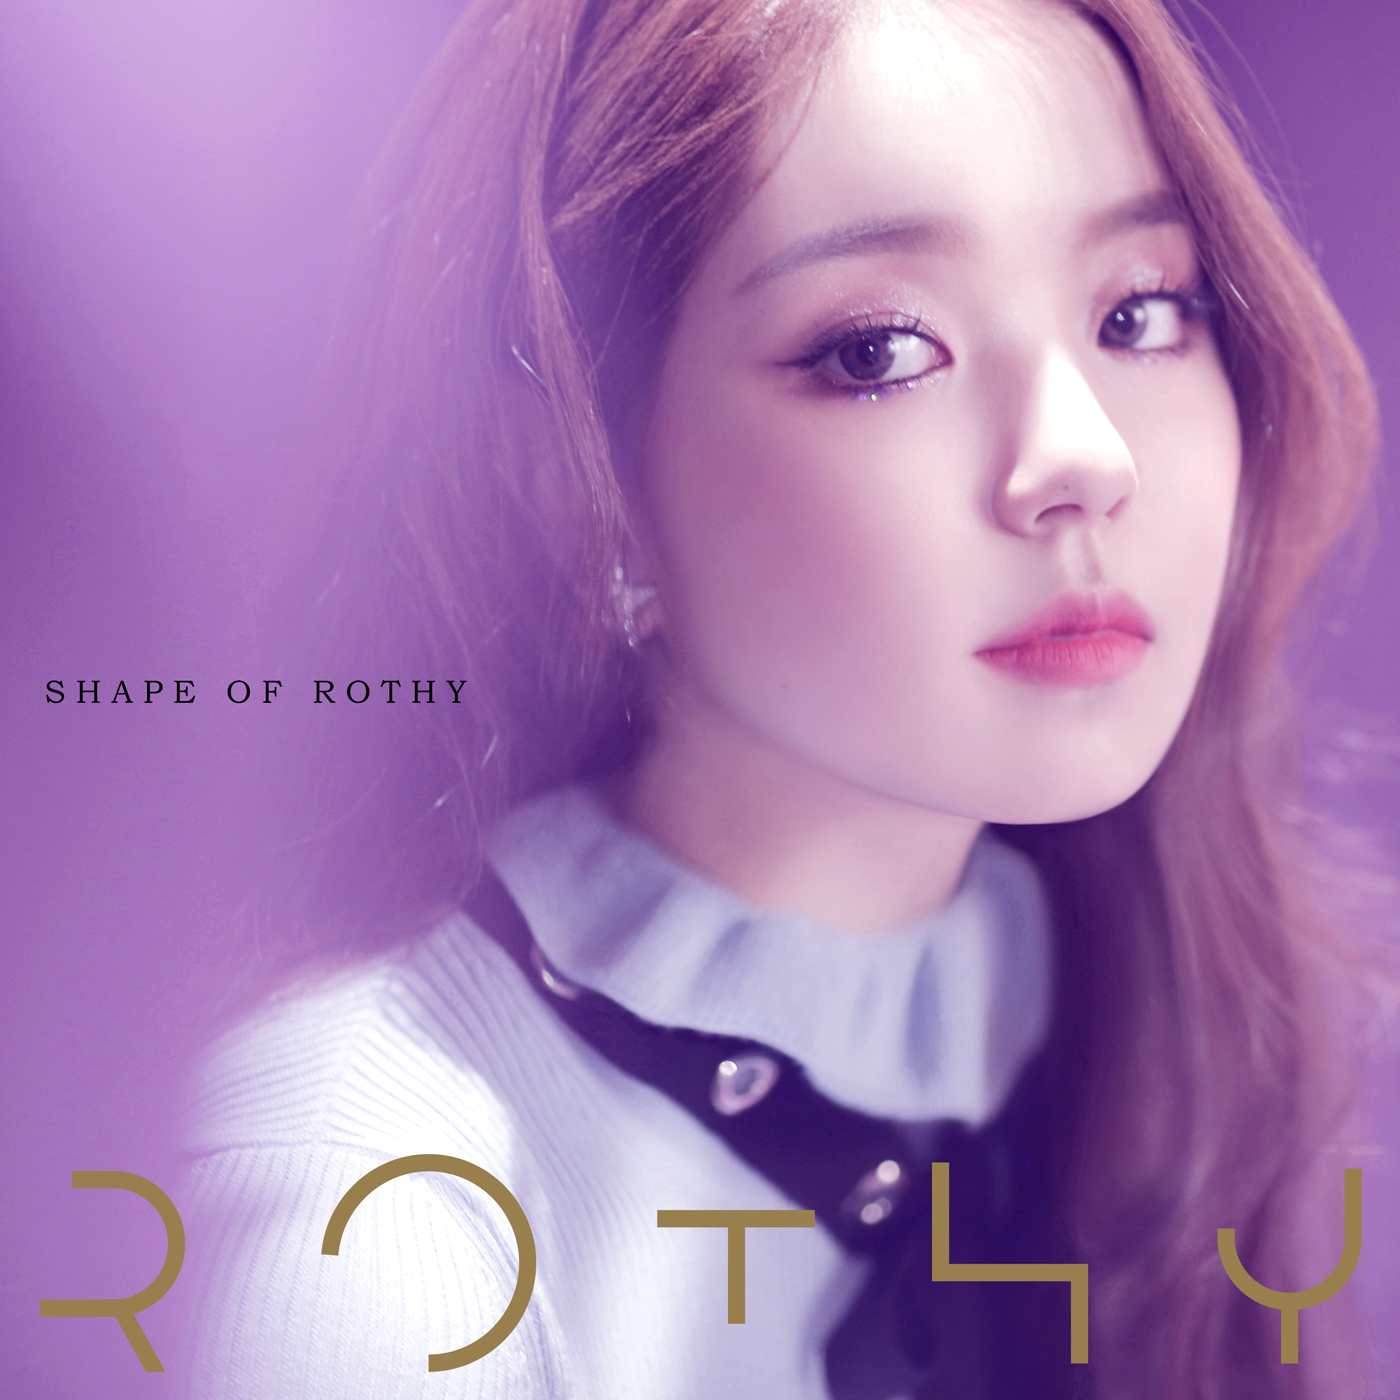 20181002.2325.6 Rothy - Shape of Rothy (FLAC) cover.jpg